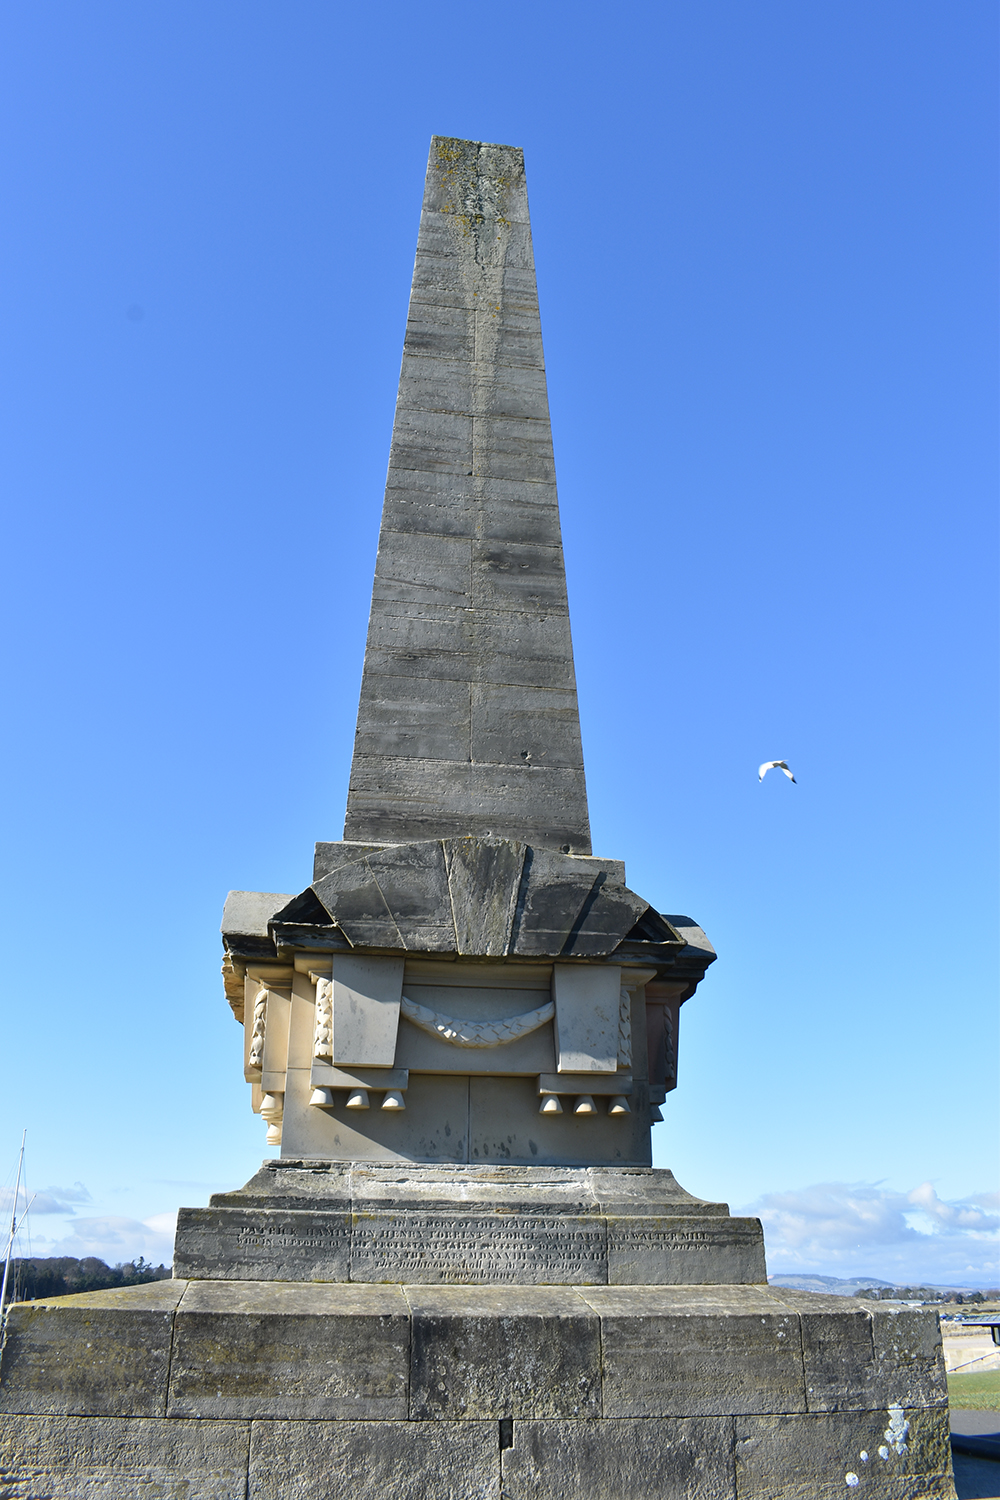 Tall obelisk with a carved inscription on its plinth, and a herring gull flying past.